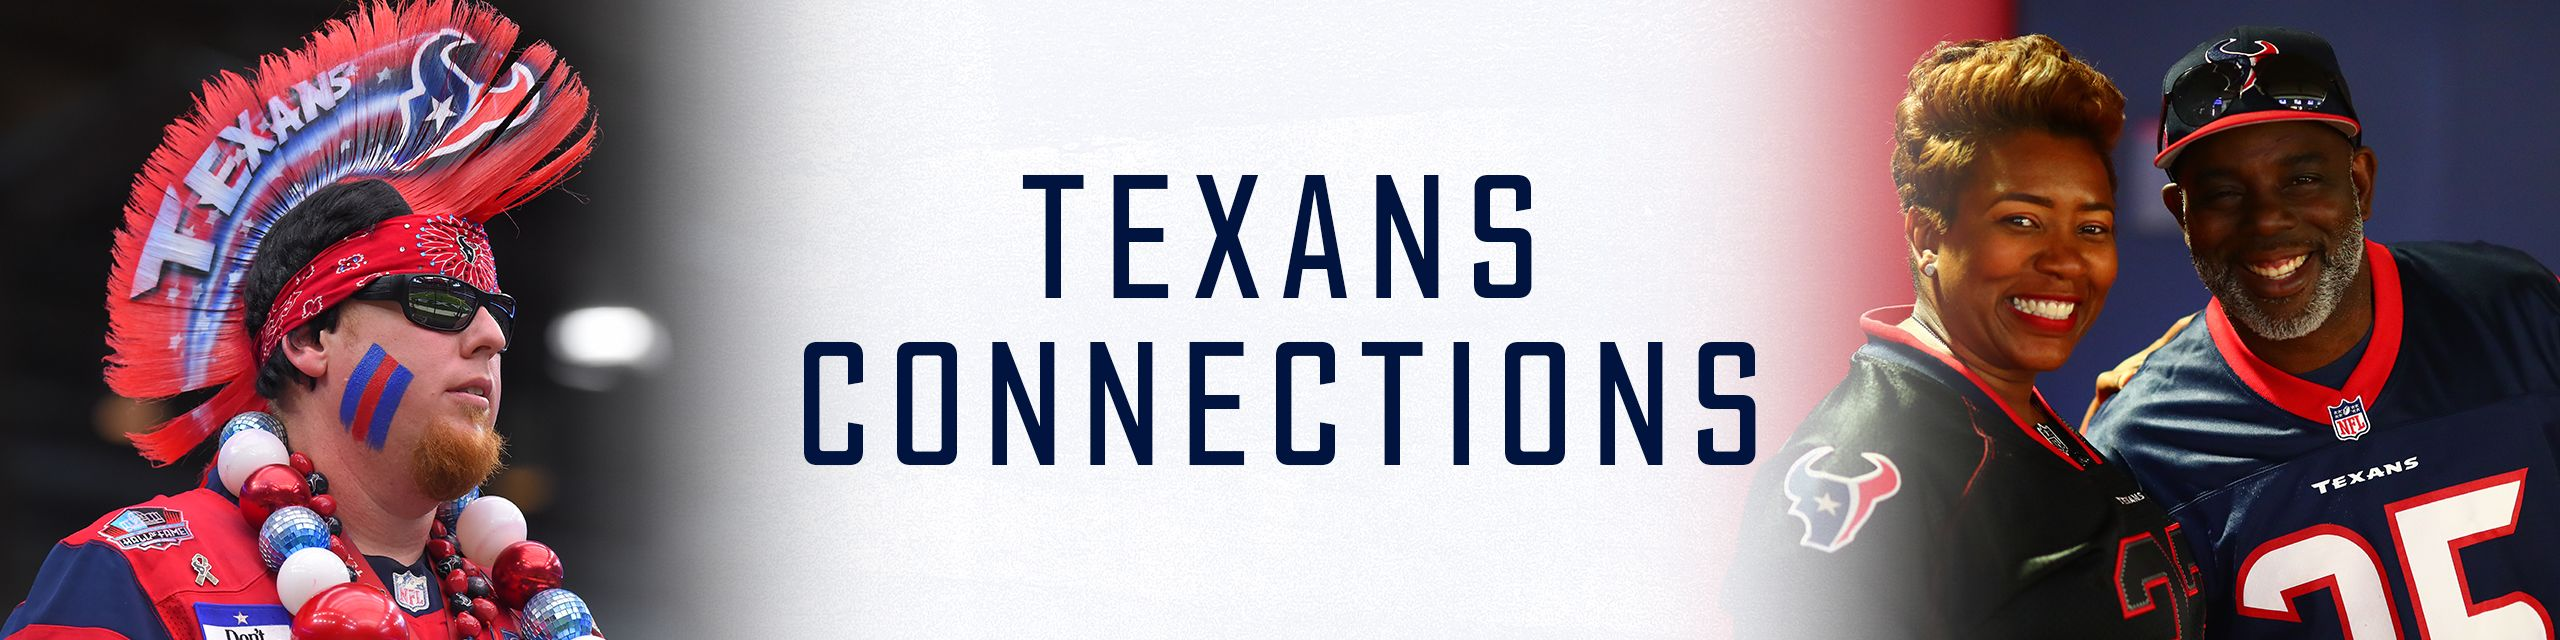 Texans Connections